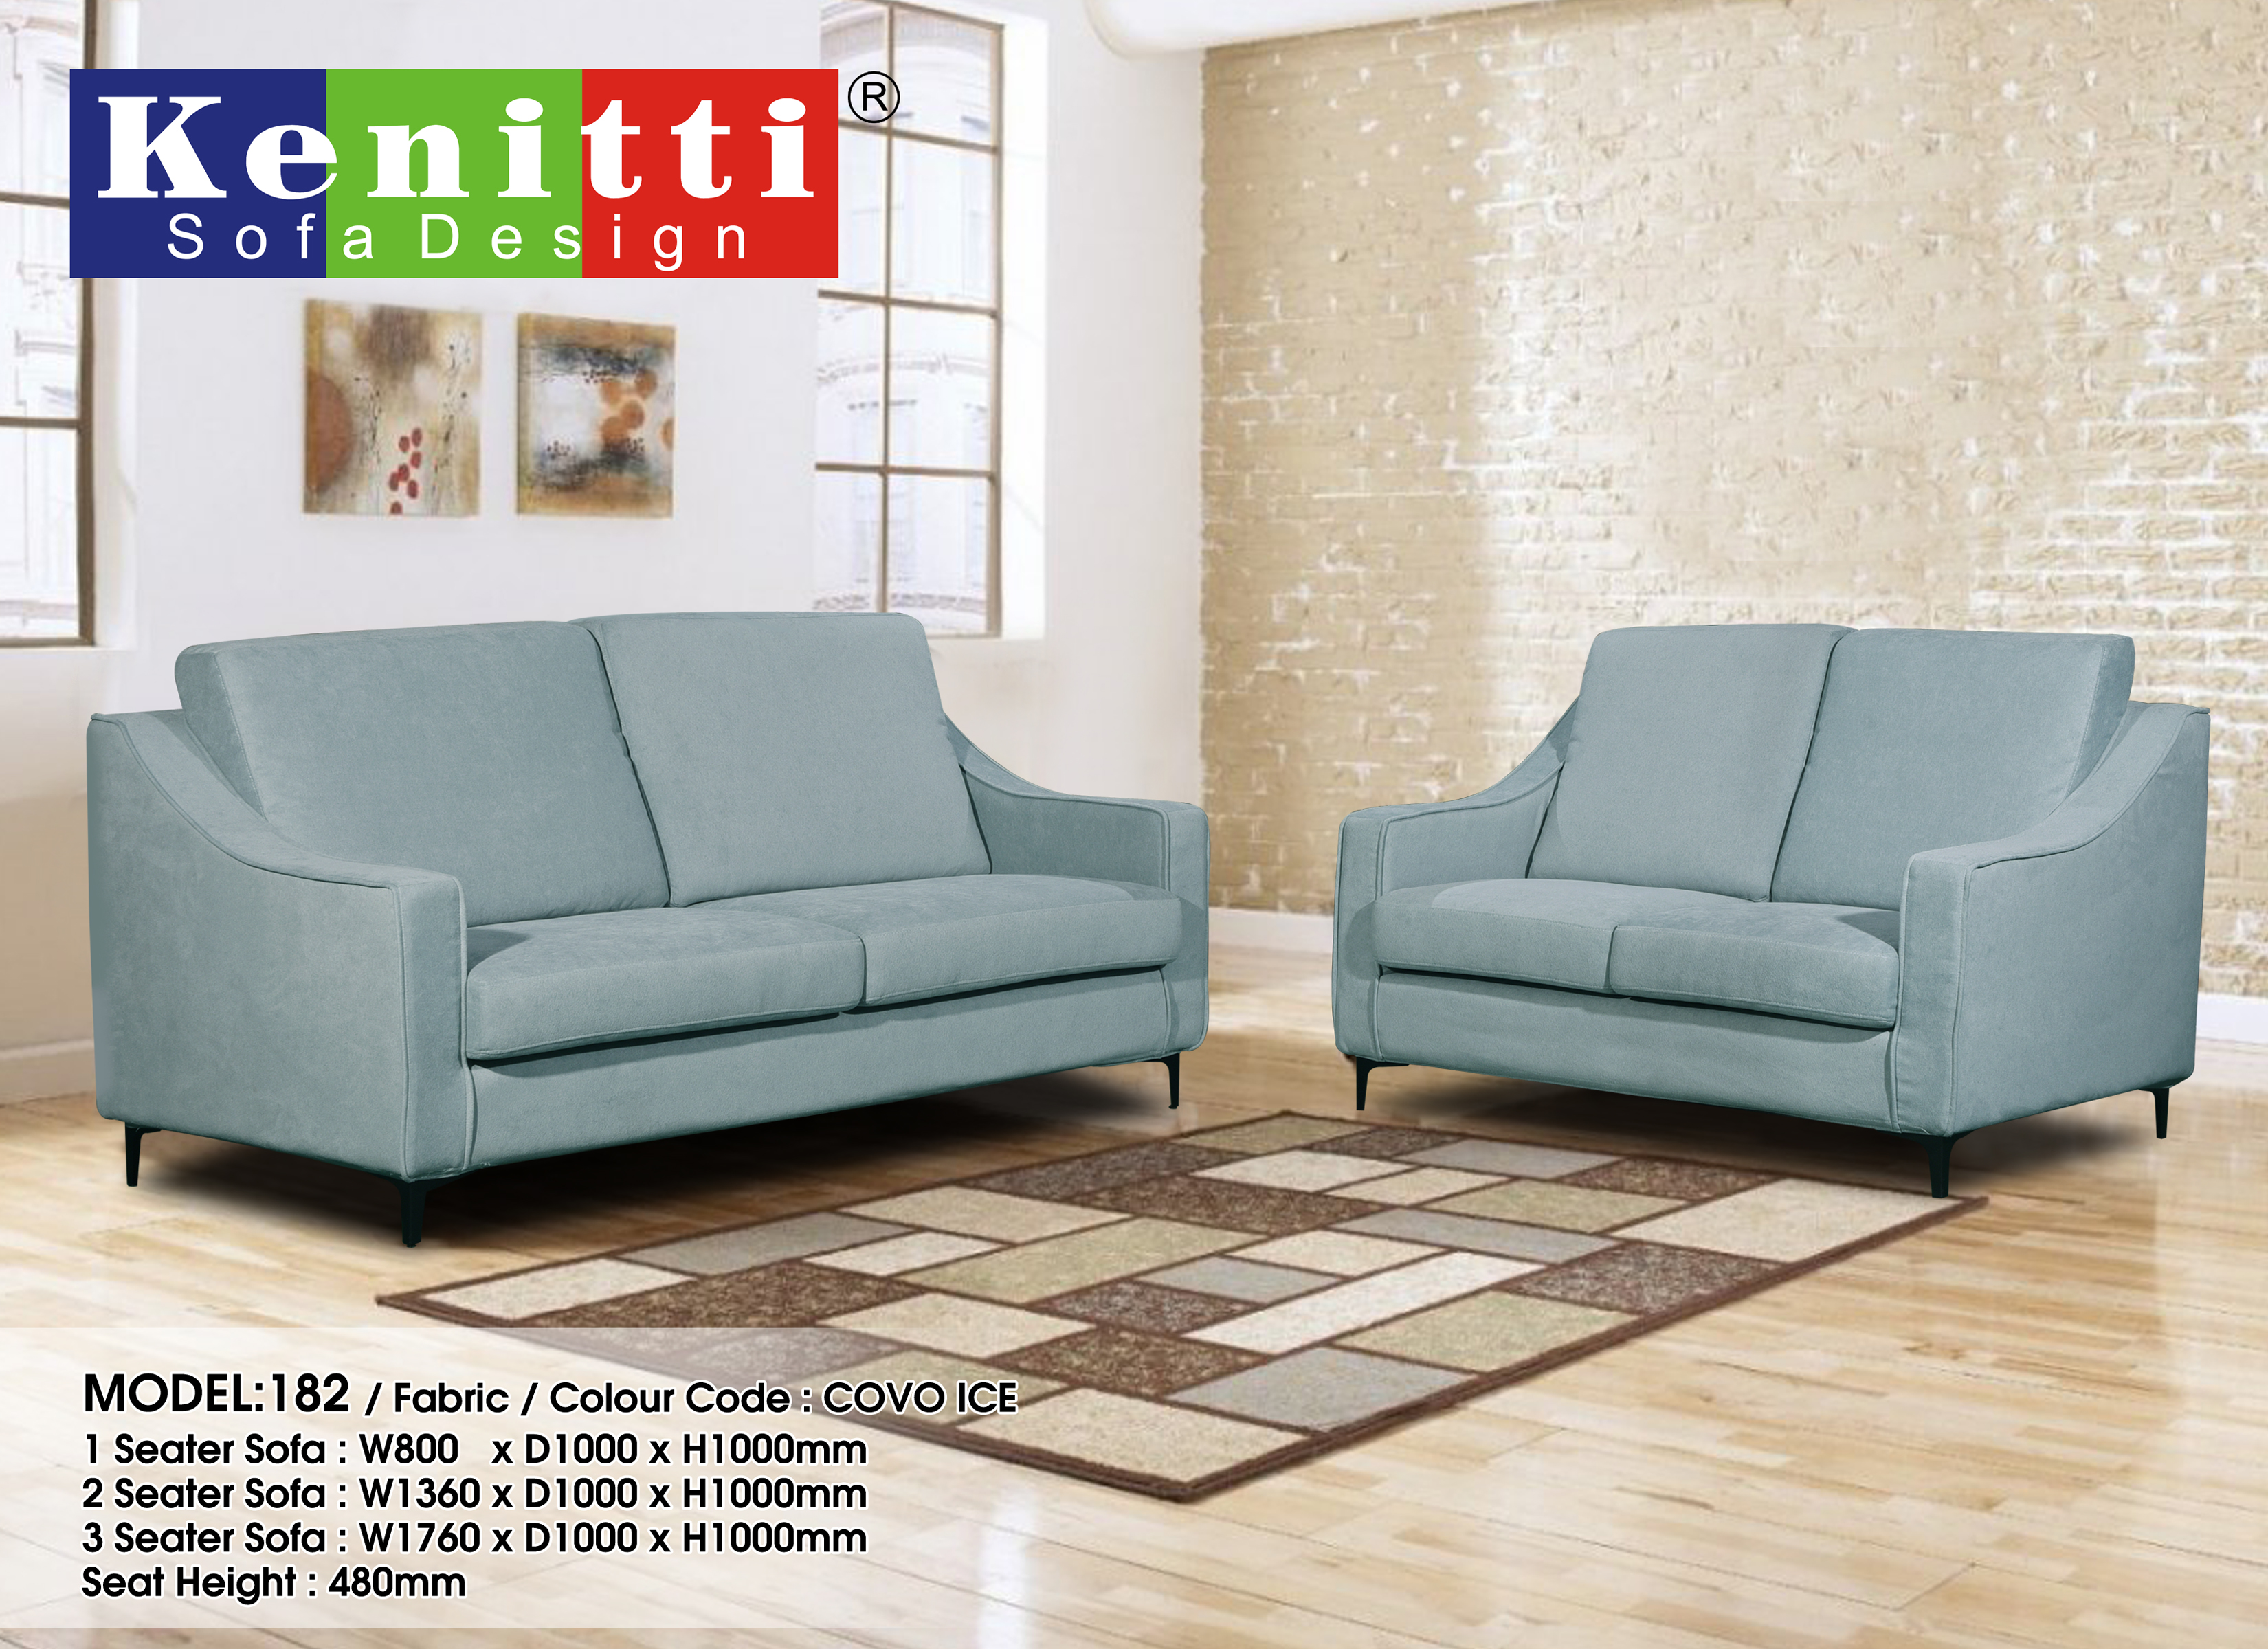 Model - 182 - 1 + 2 + 3 Fabric Sofa Color